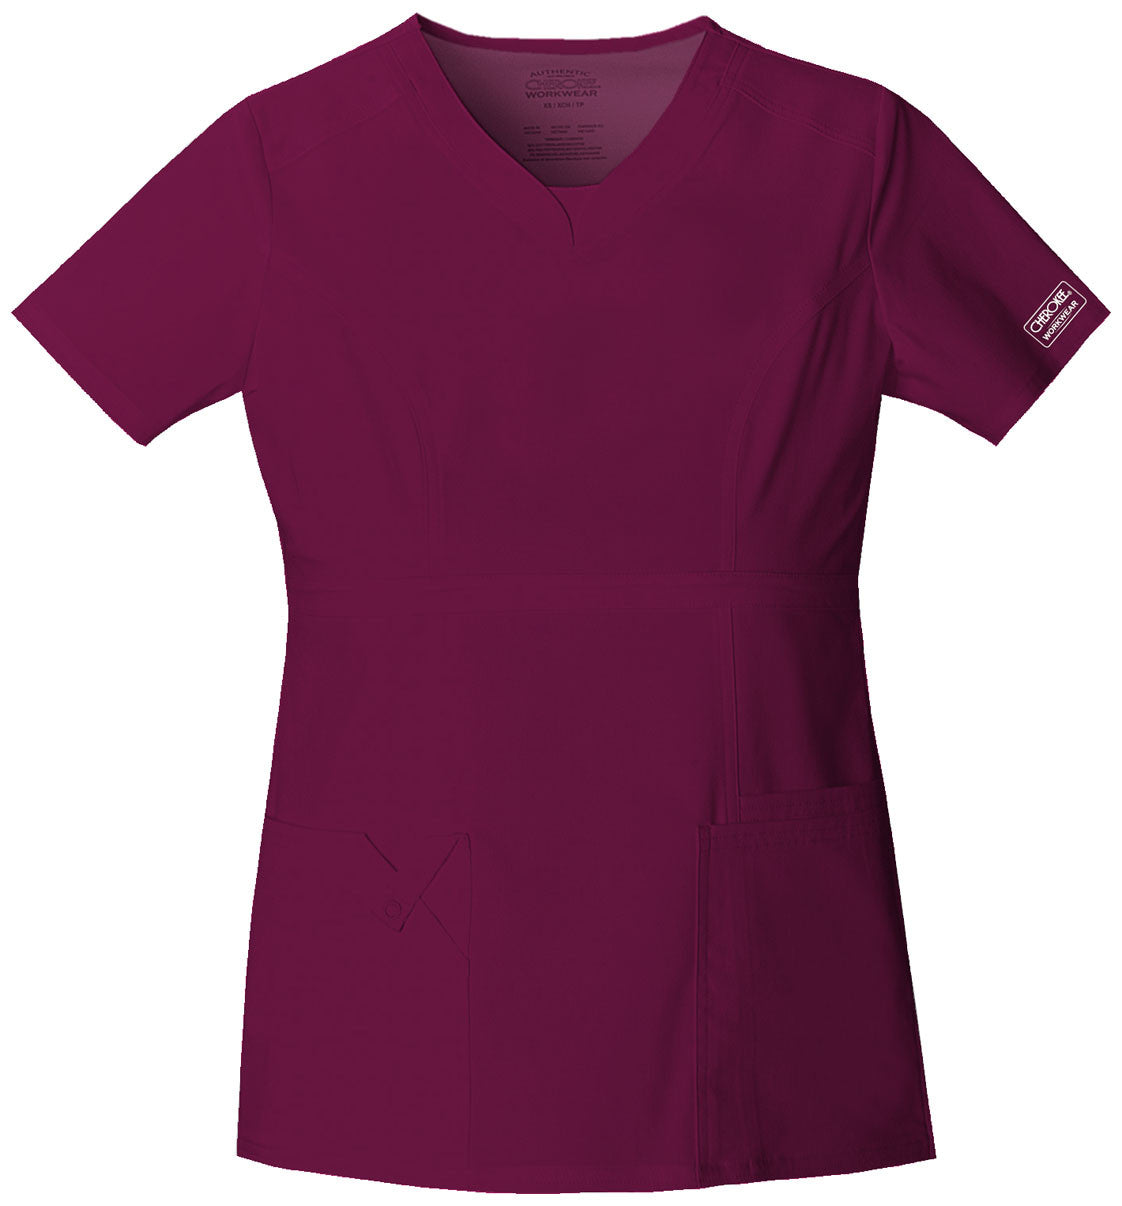 Cherokee Workwear Premium Core Stretch V-Neck Top - Company Store Uniforms